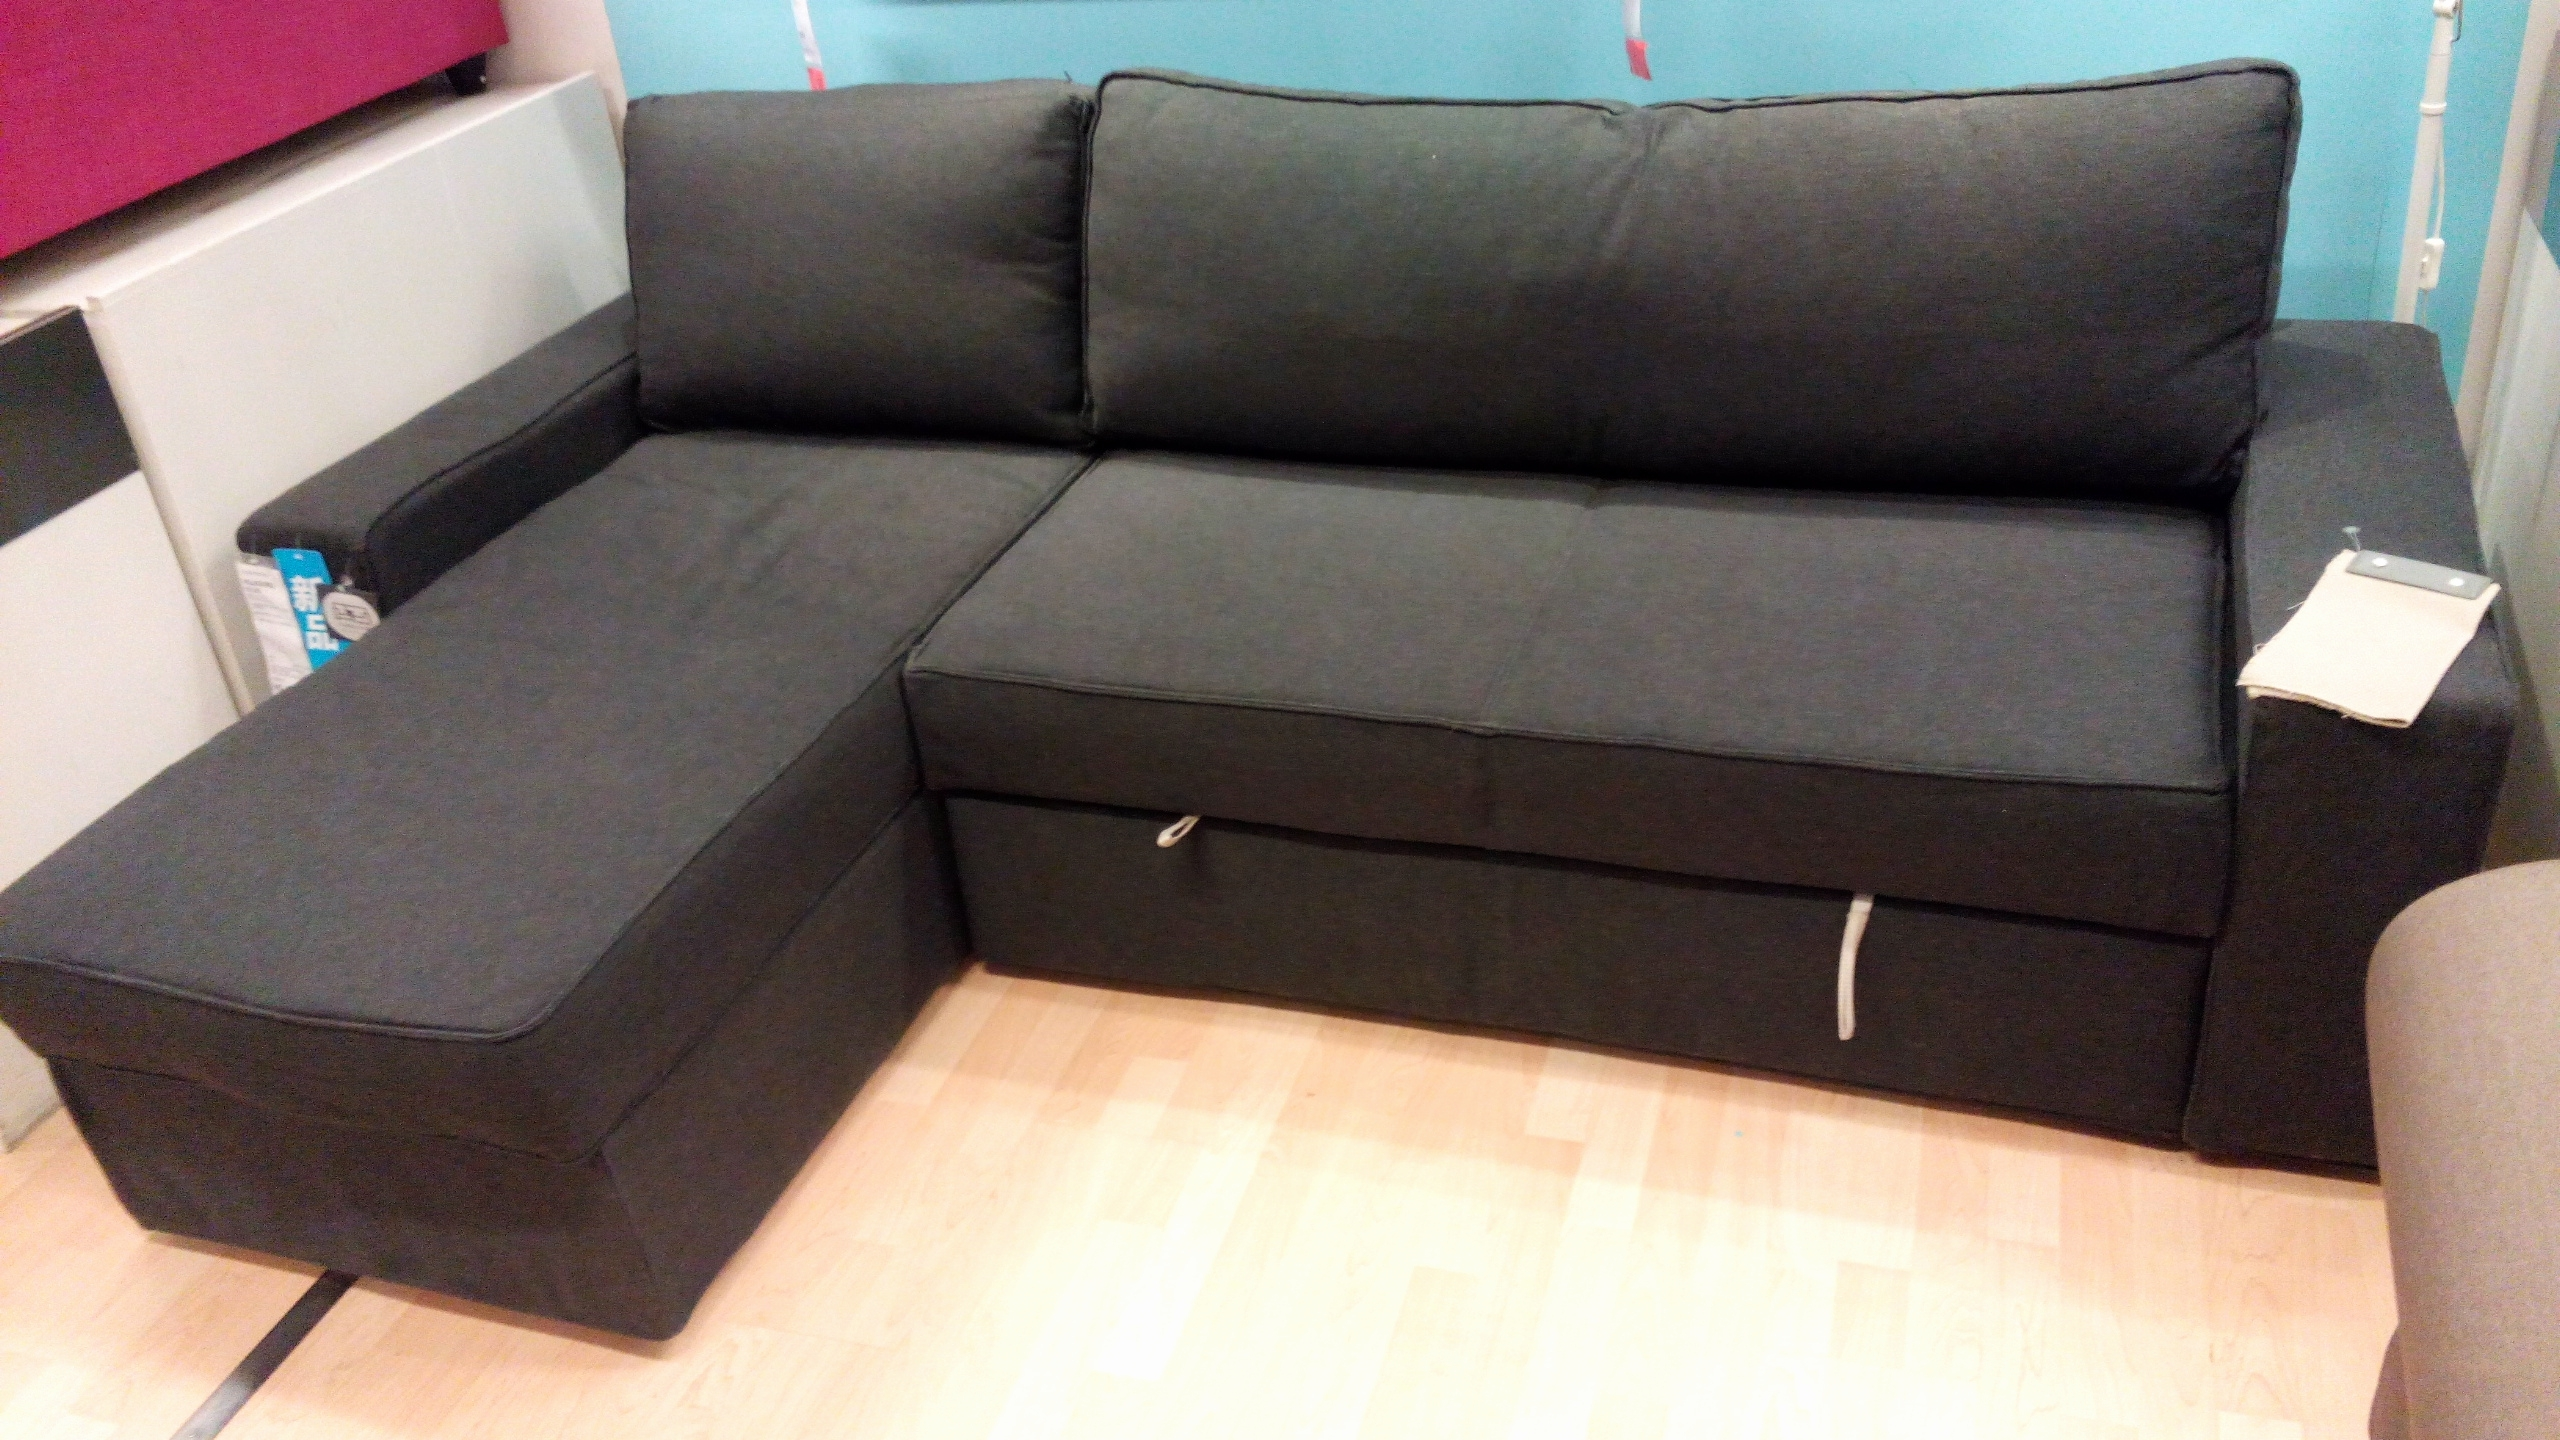 Super Ikea Sectional Sofa Bed Figures – Seatersofa Pertaining To Ikea Sectional Sofa Beds (View 5 of 10)